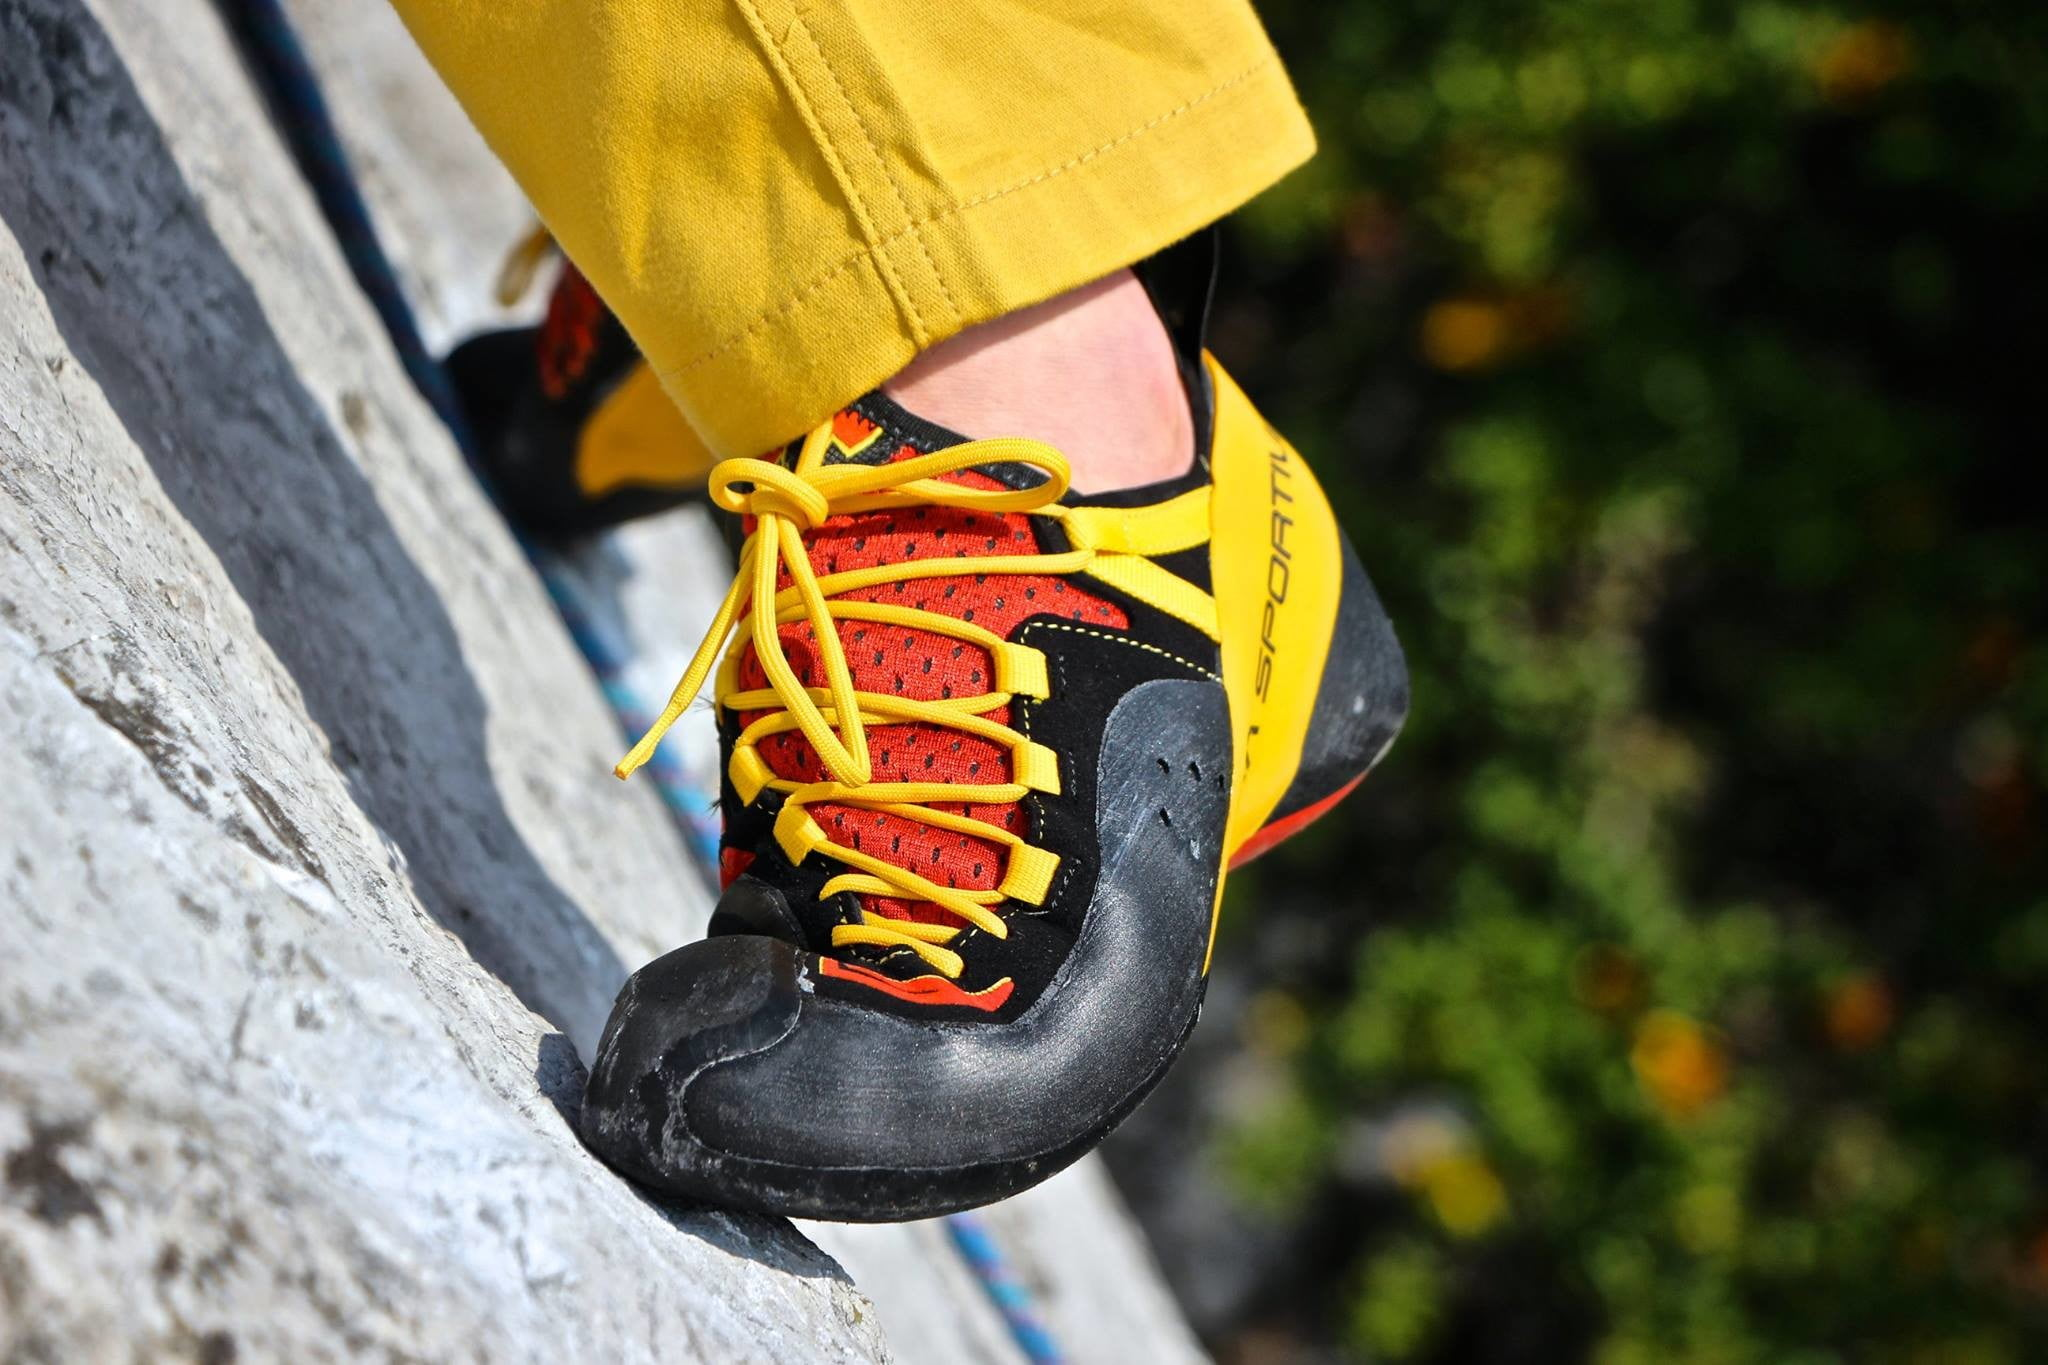 Best Climbing Shoes For Limestone